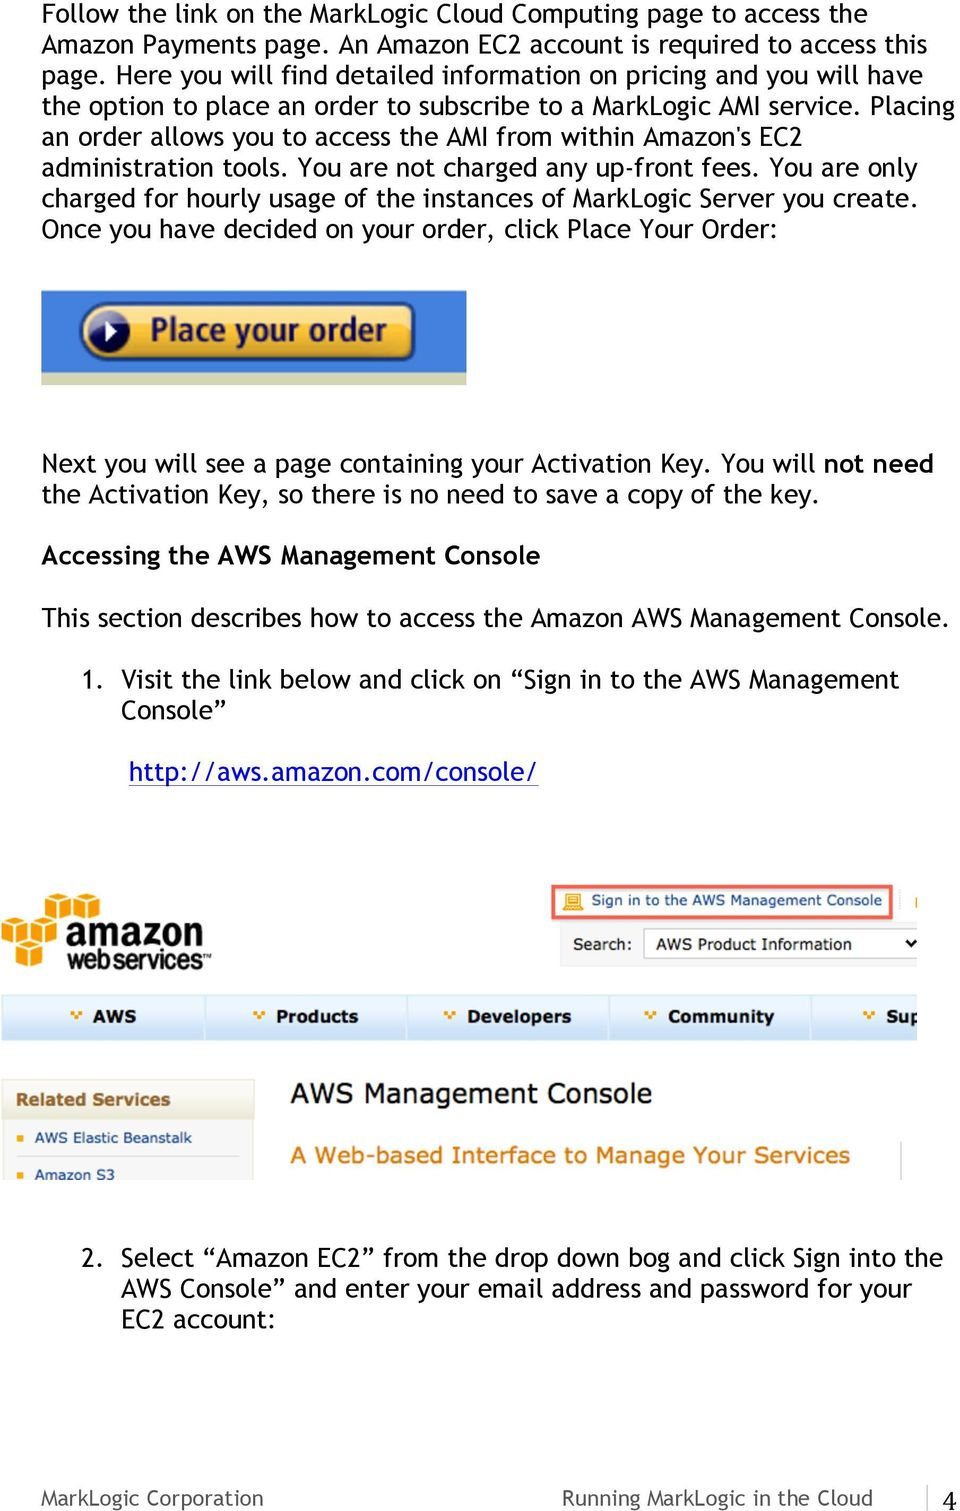 Placing an order allows you to access the AMI from within Amazon's EC2 administration tools. You are not charged any up-front fees.